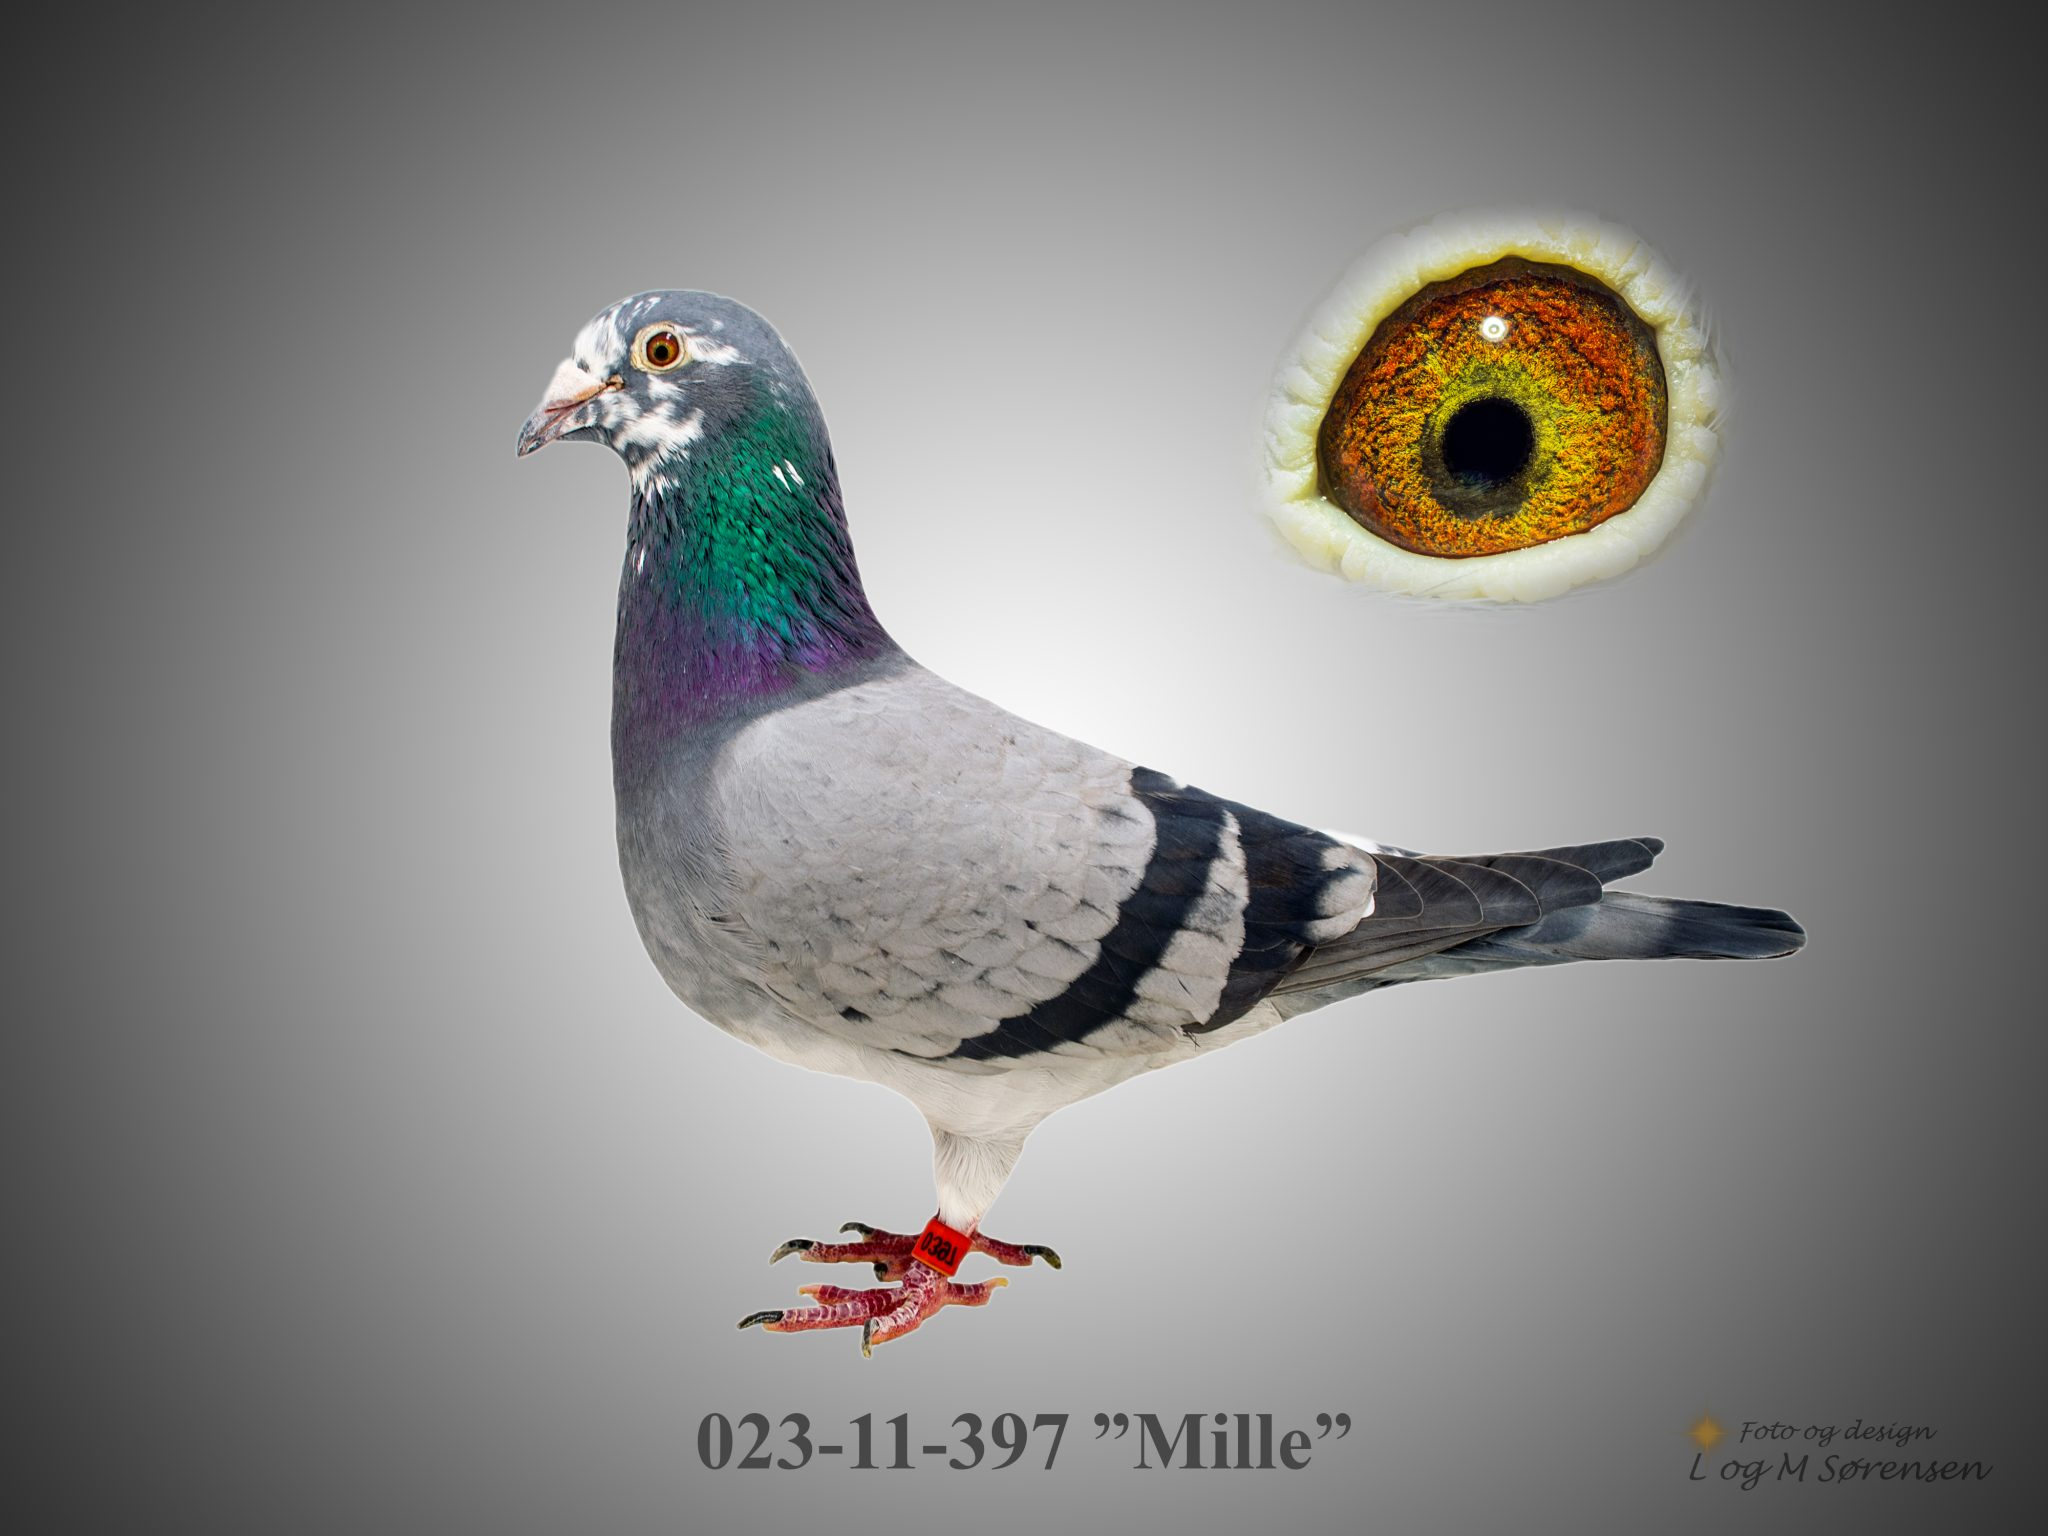 """Rede 15 023-11-397 """"Mille"""""""